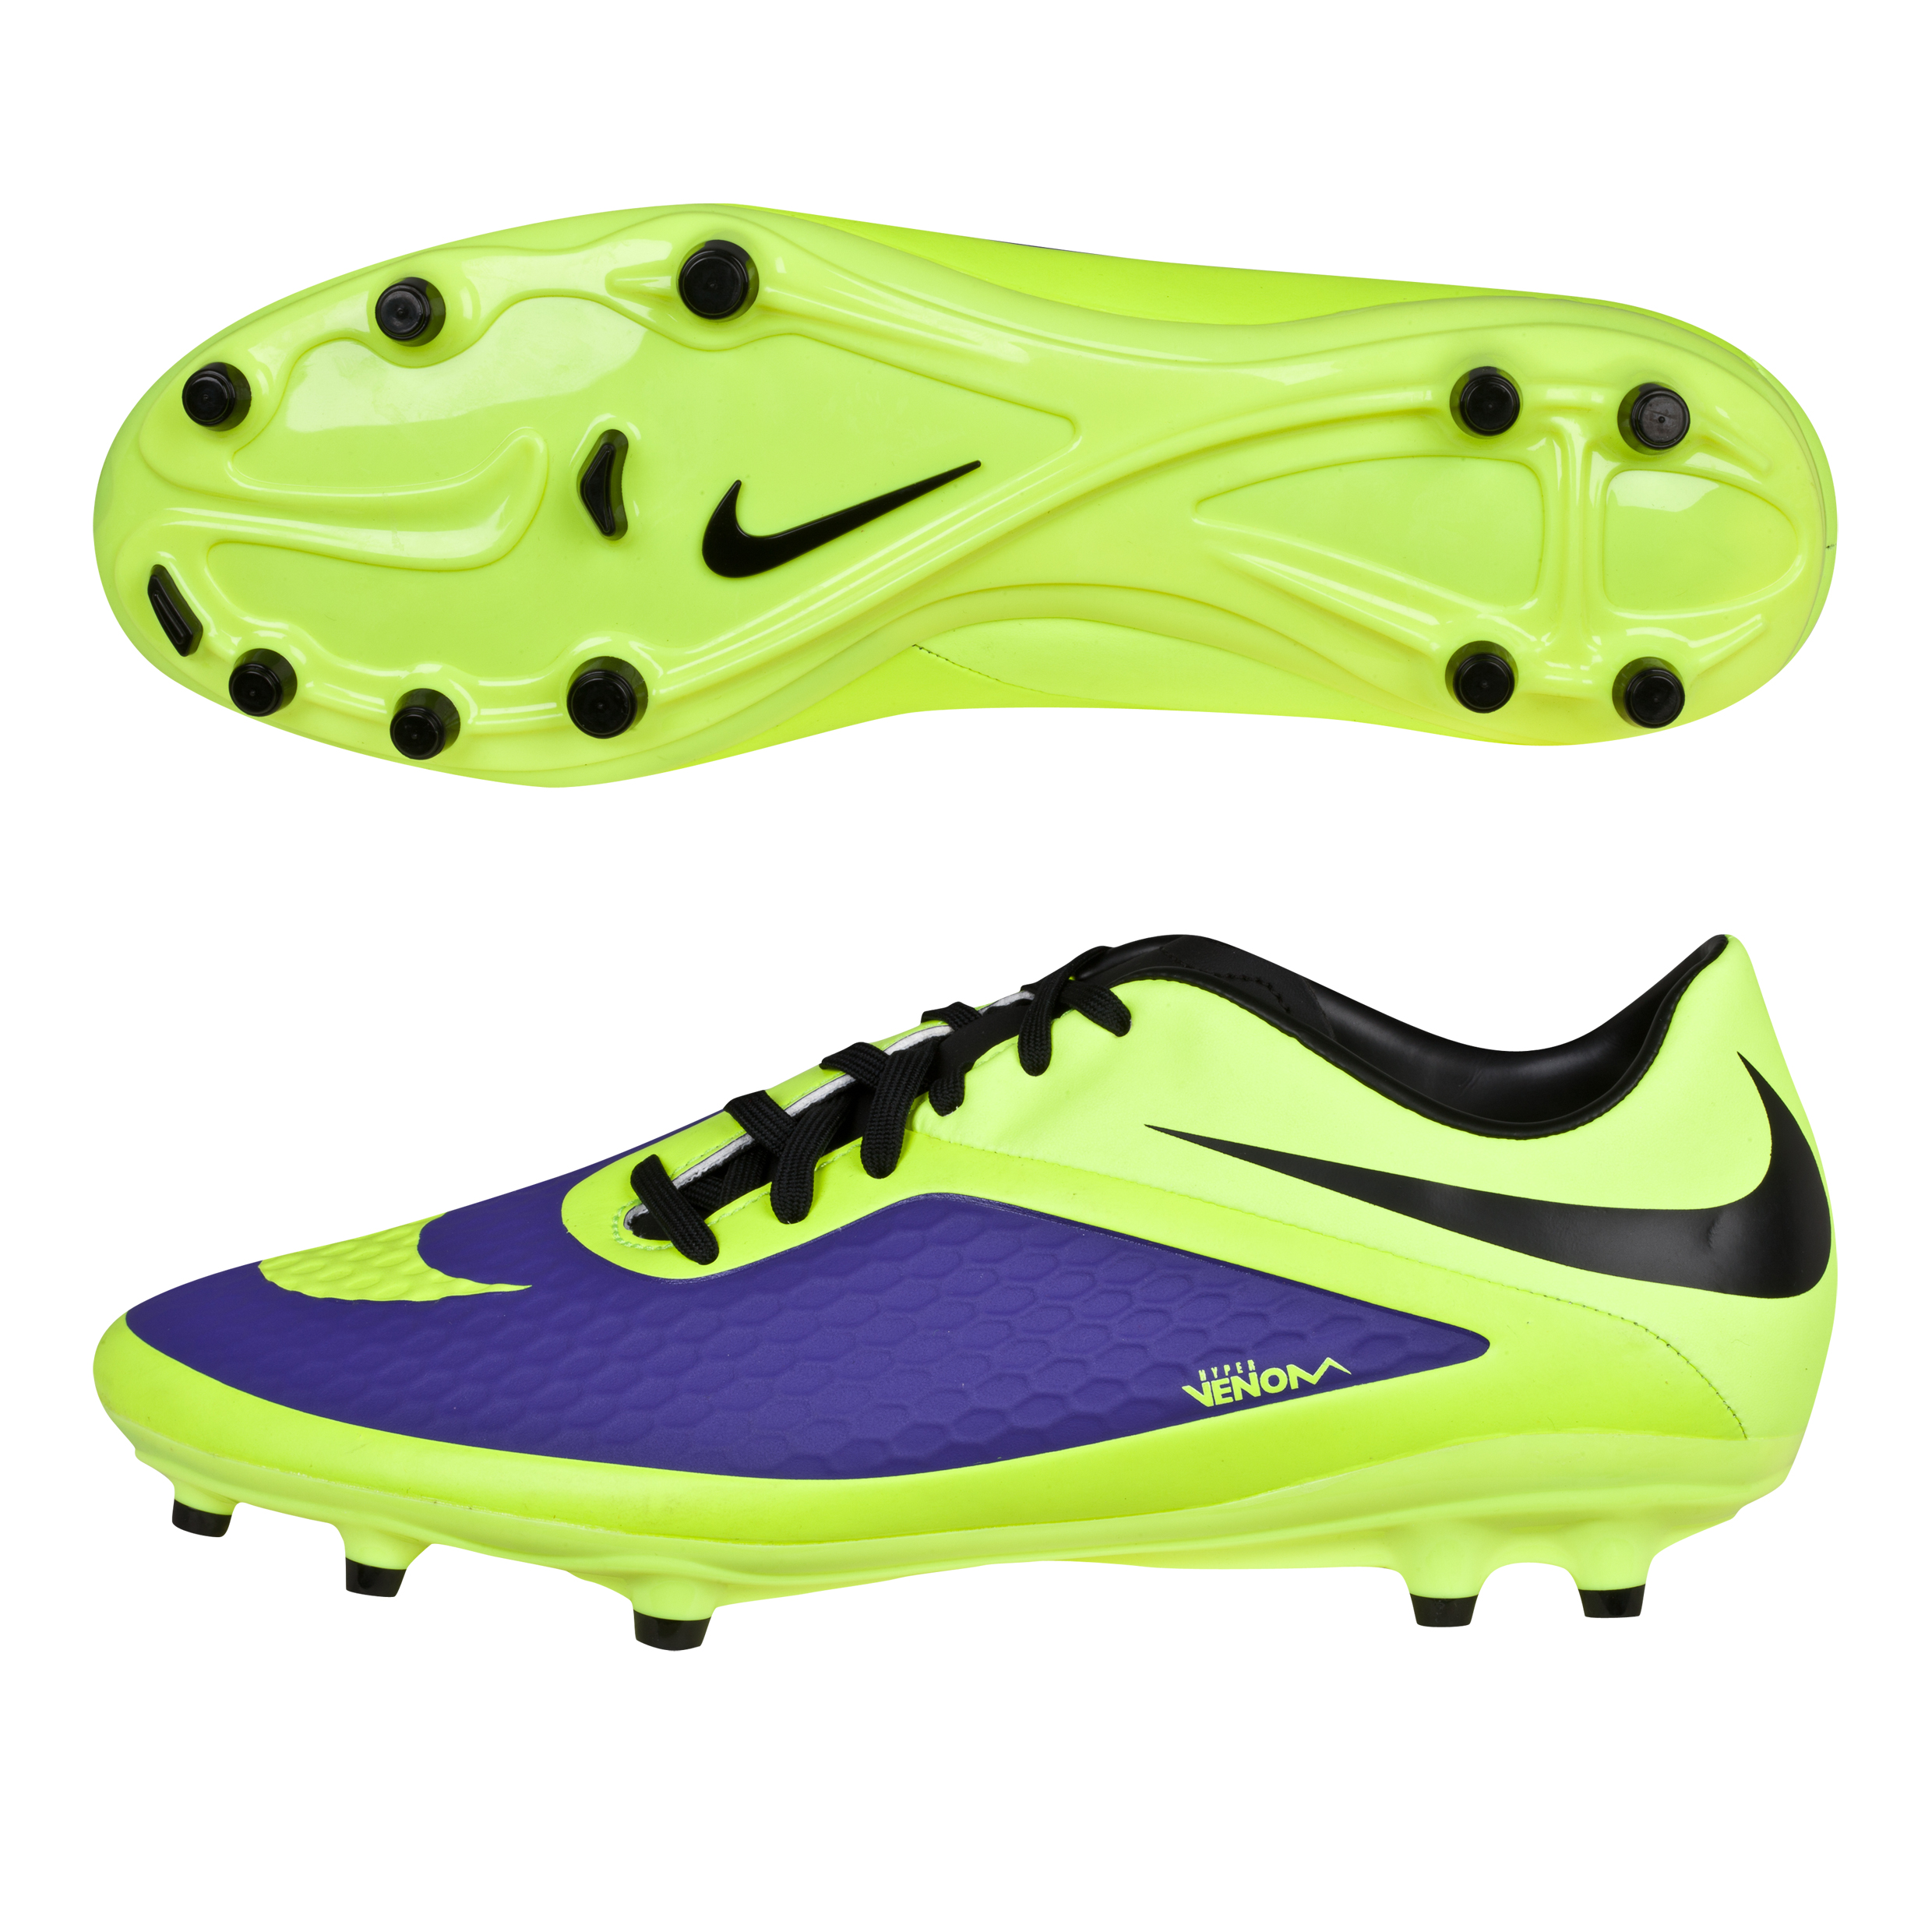 Nike Hypervenom Phelon Firm Ground Football Boots -Electro Purple/Volt/Black Purple